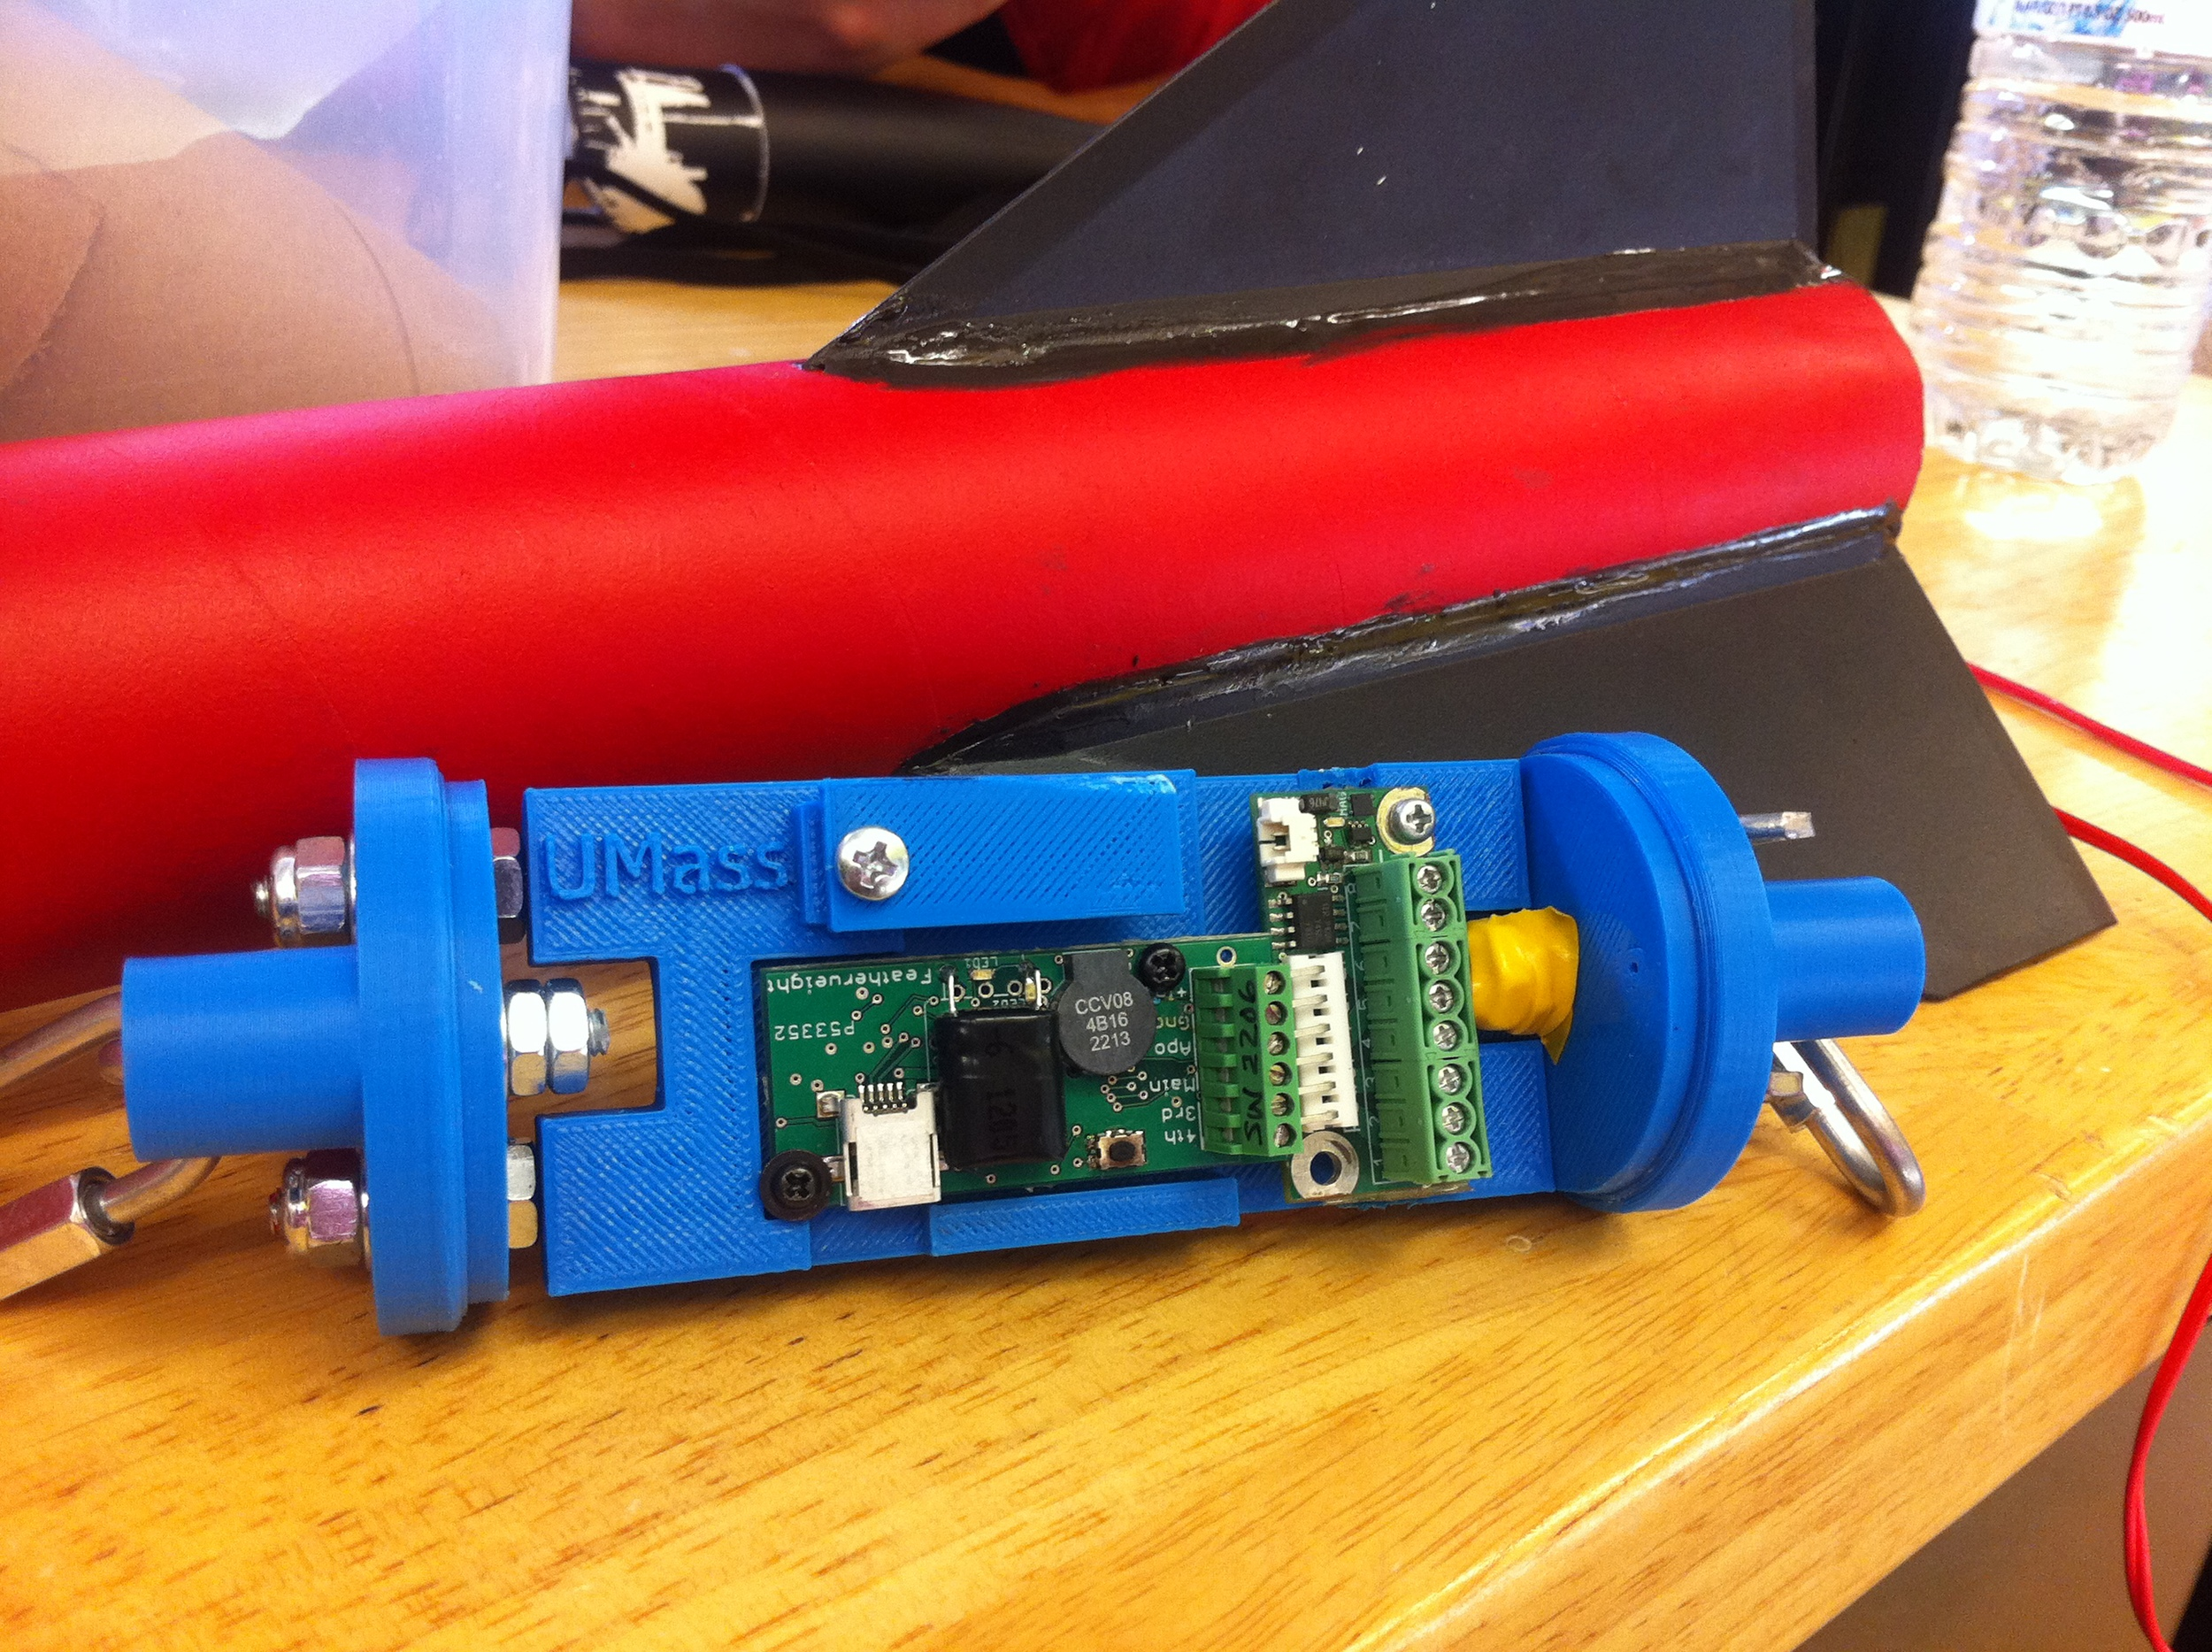 Prototype ABS altimeter bay designed specifically for the Featherweight Raven altimeter